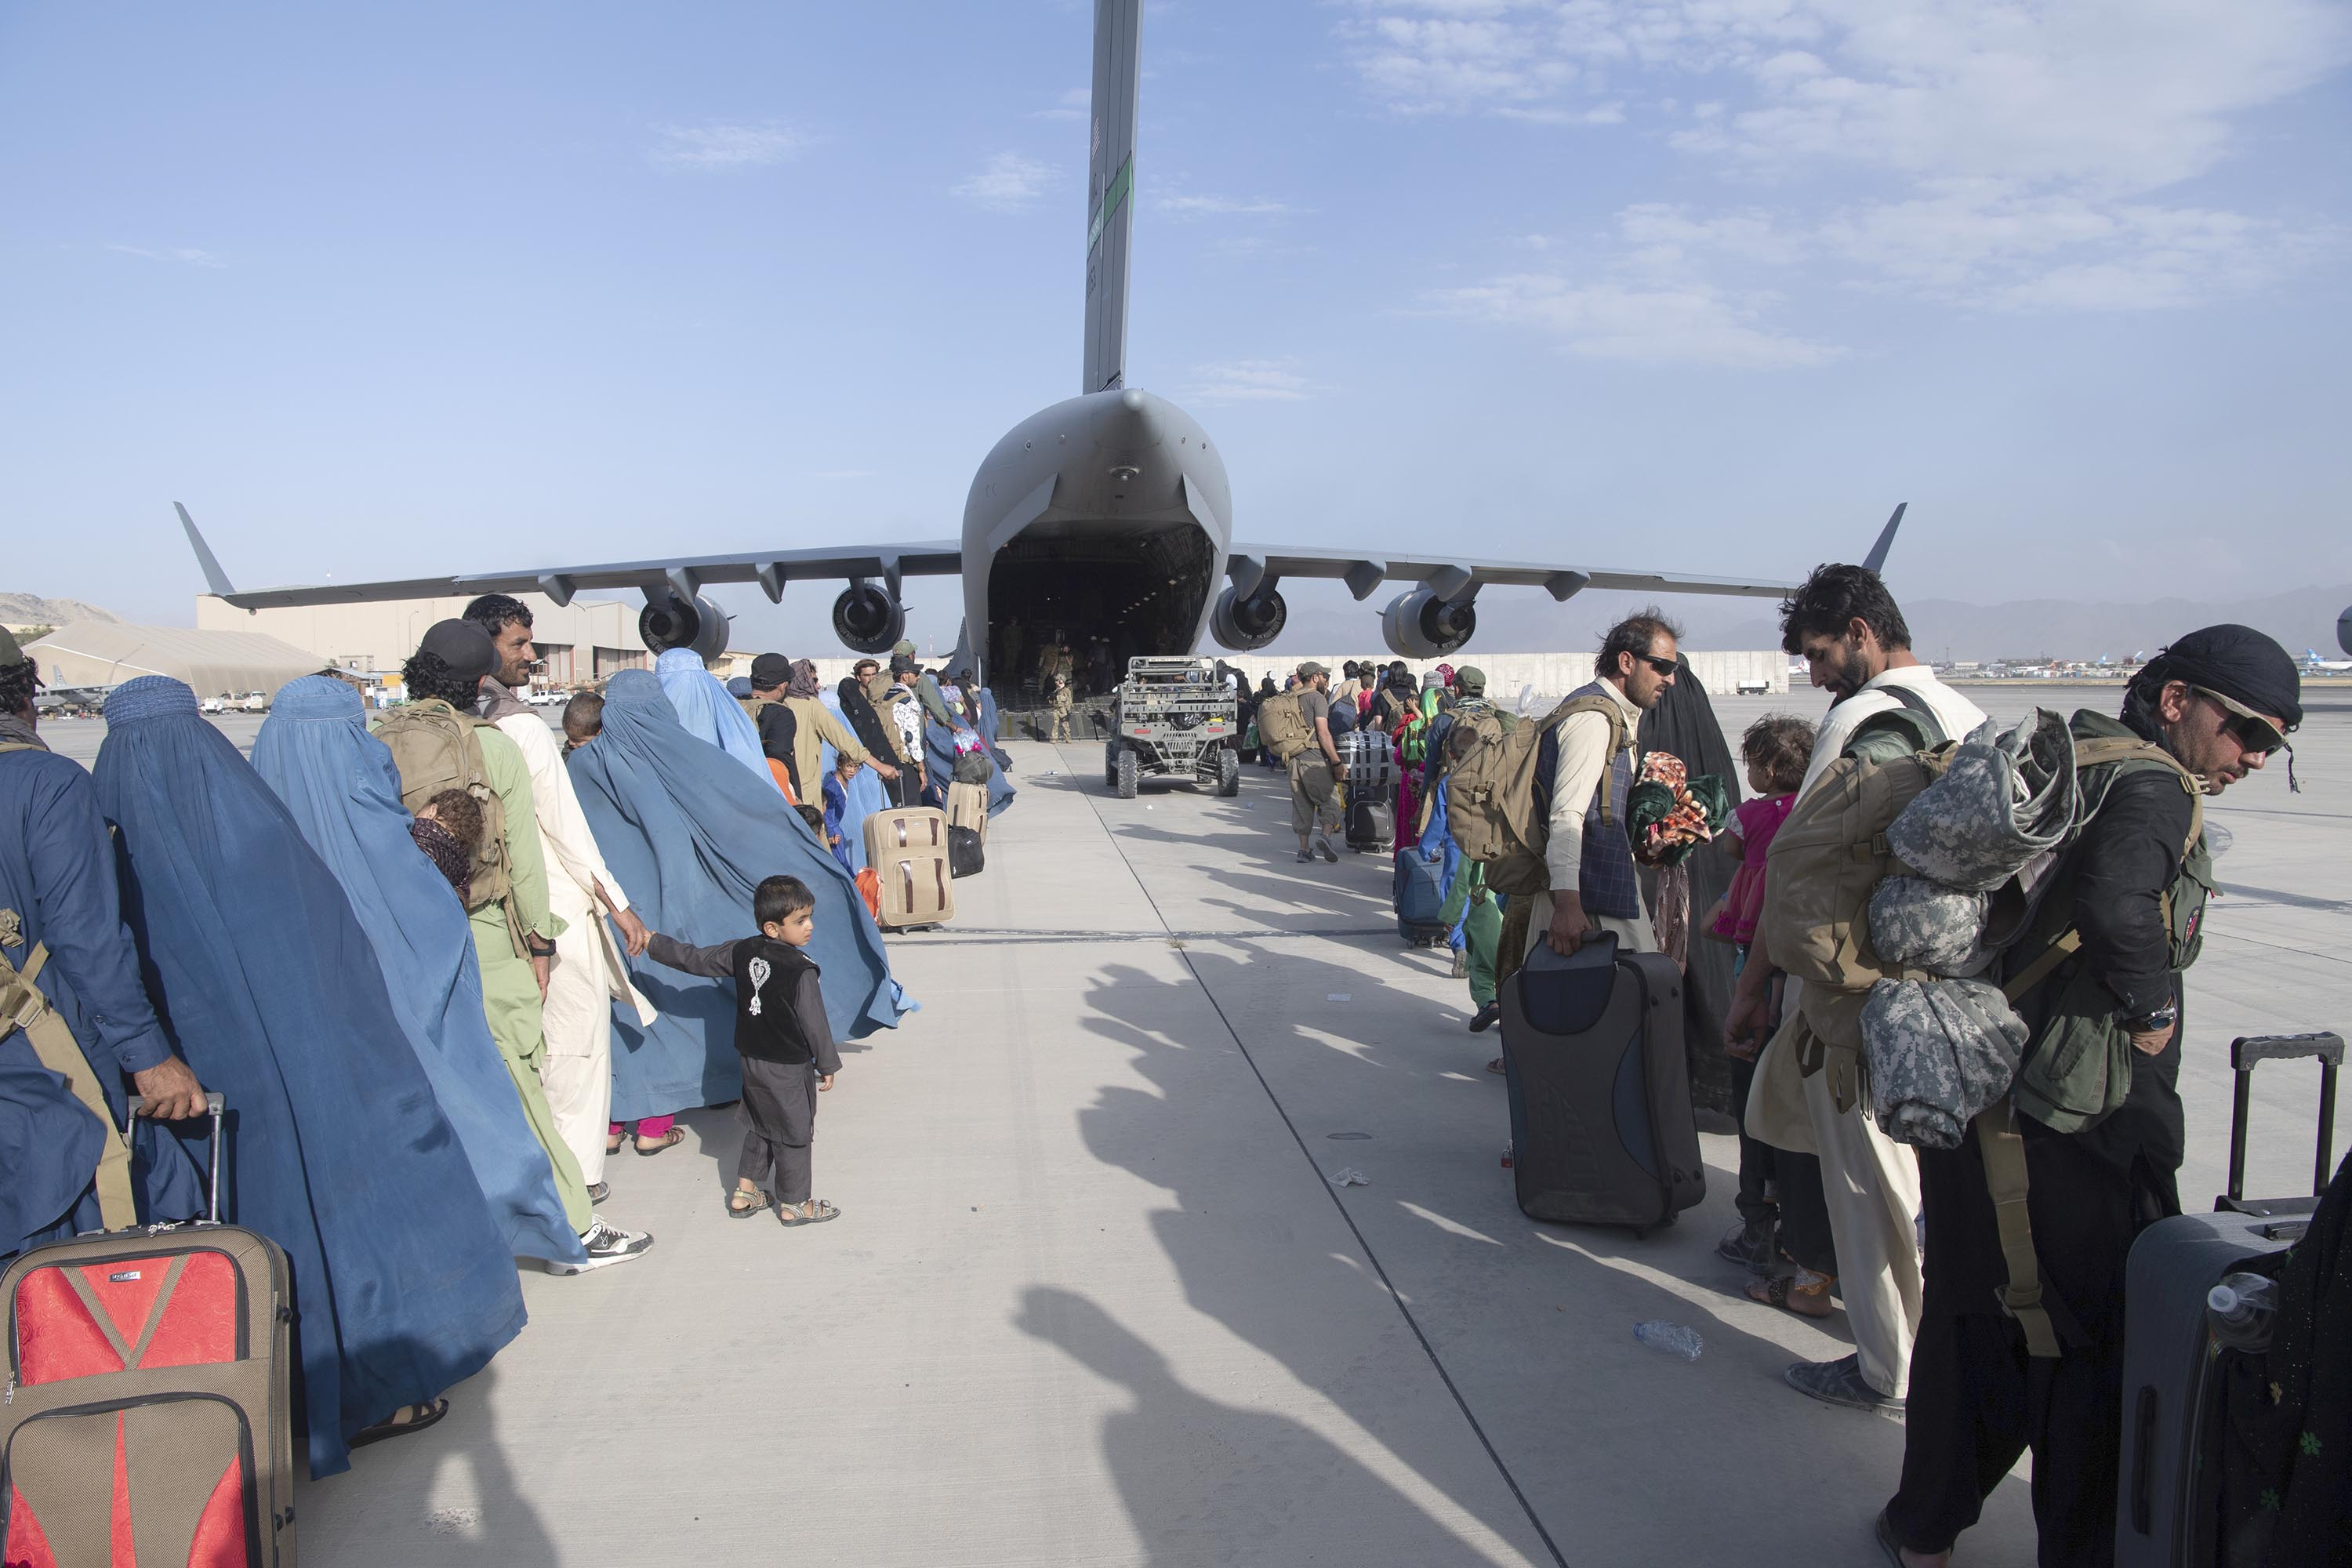 People being evacuated from Afghanistan queue to board an U.S. Air Force C-17 Globemaster III aircraft at Hamid Karzai International Airport on August 24.